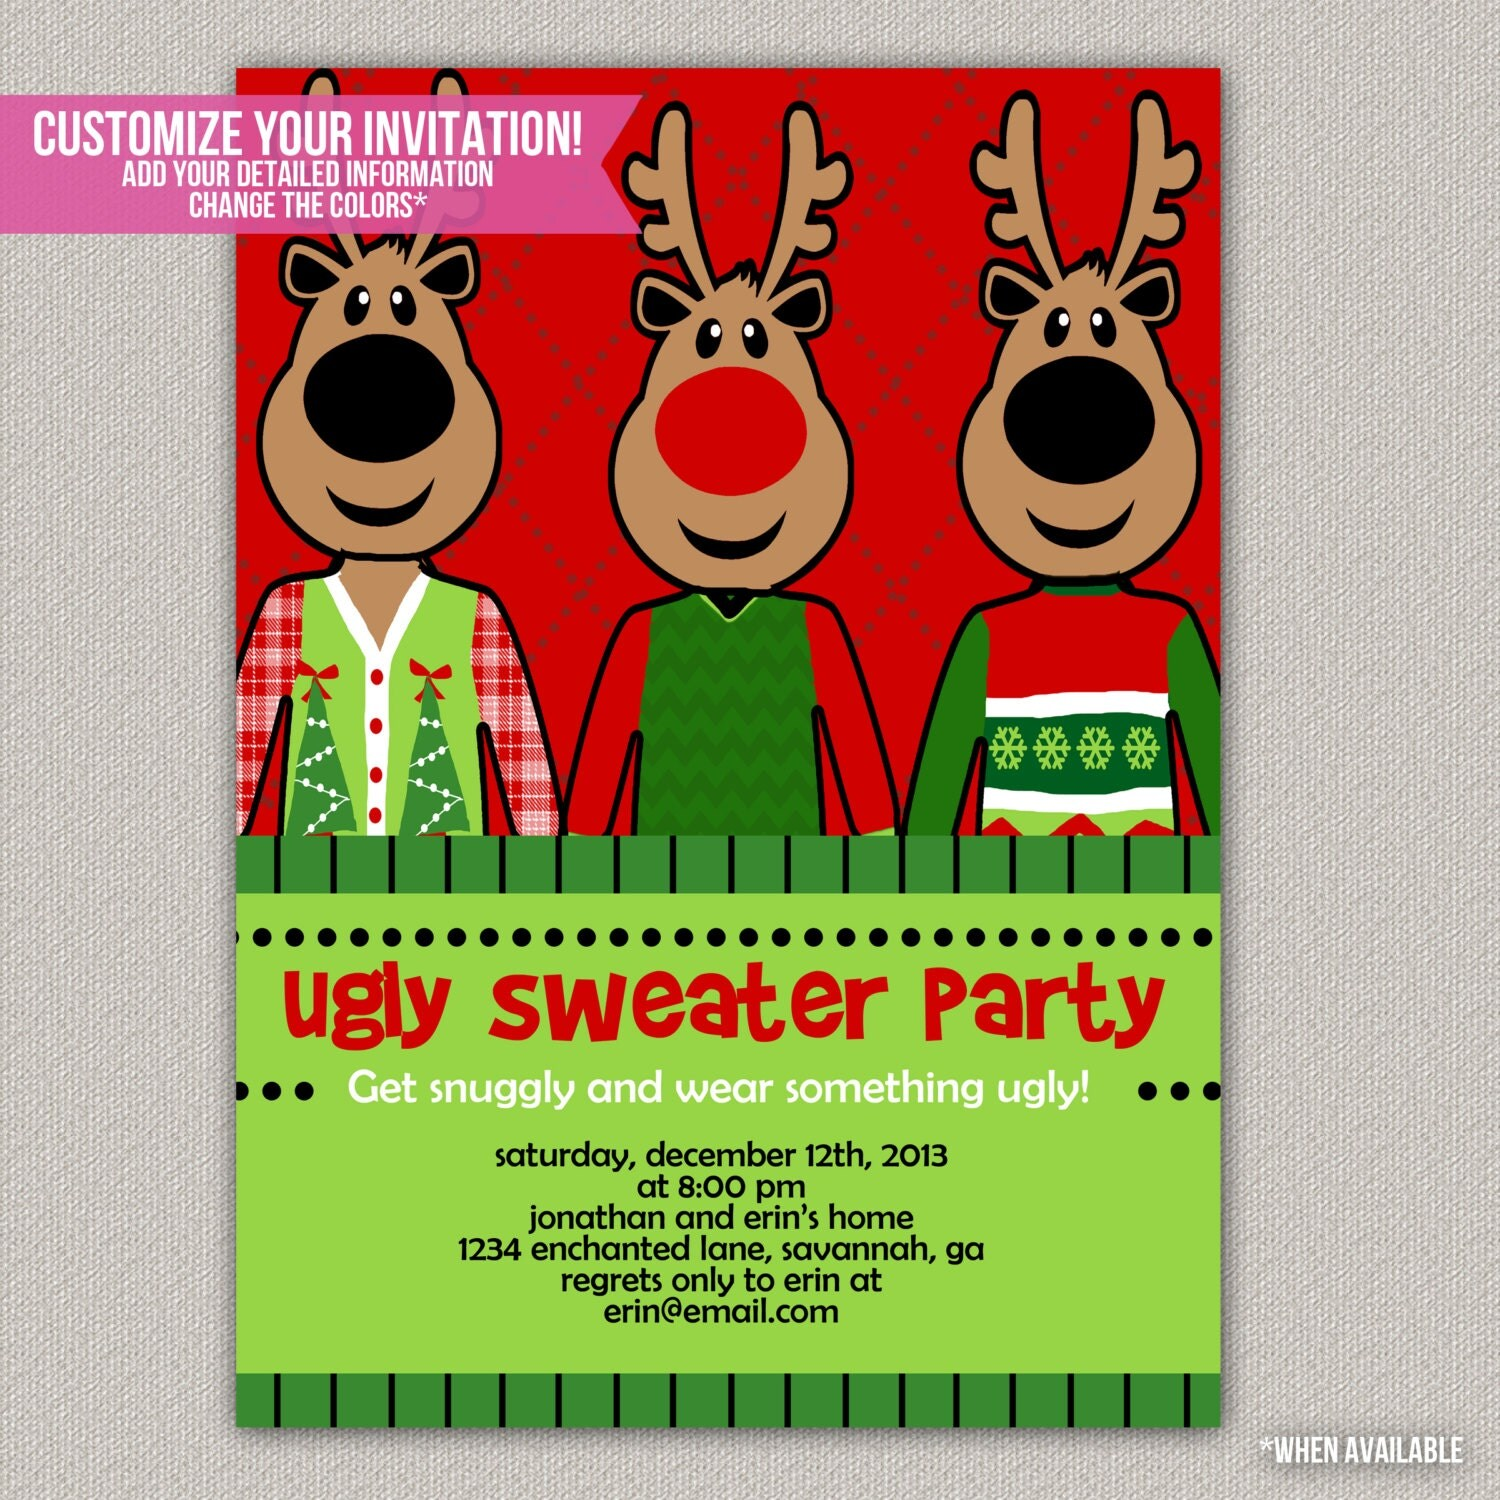 Ugly Christmas Party Sweaters: Ugly Sweater Party Tacky Sweater Christmas By